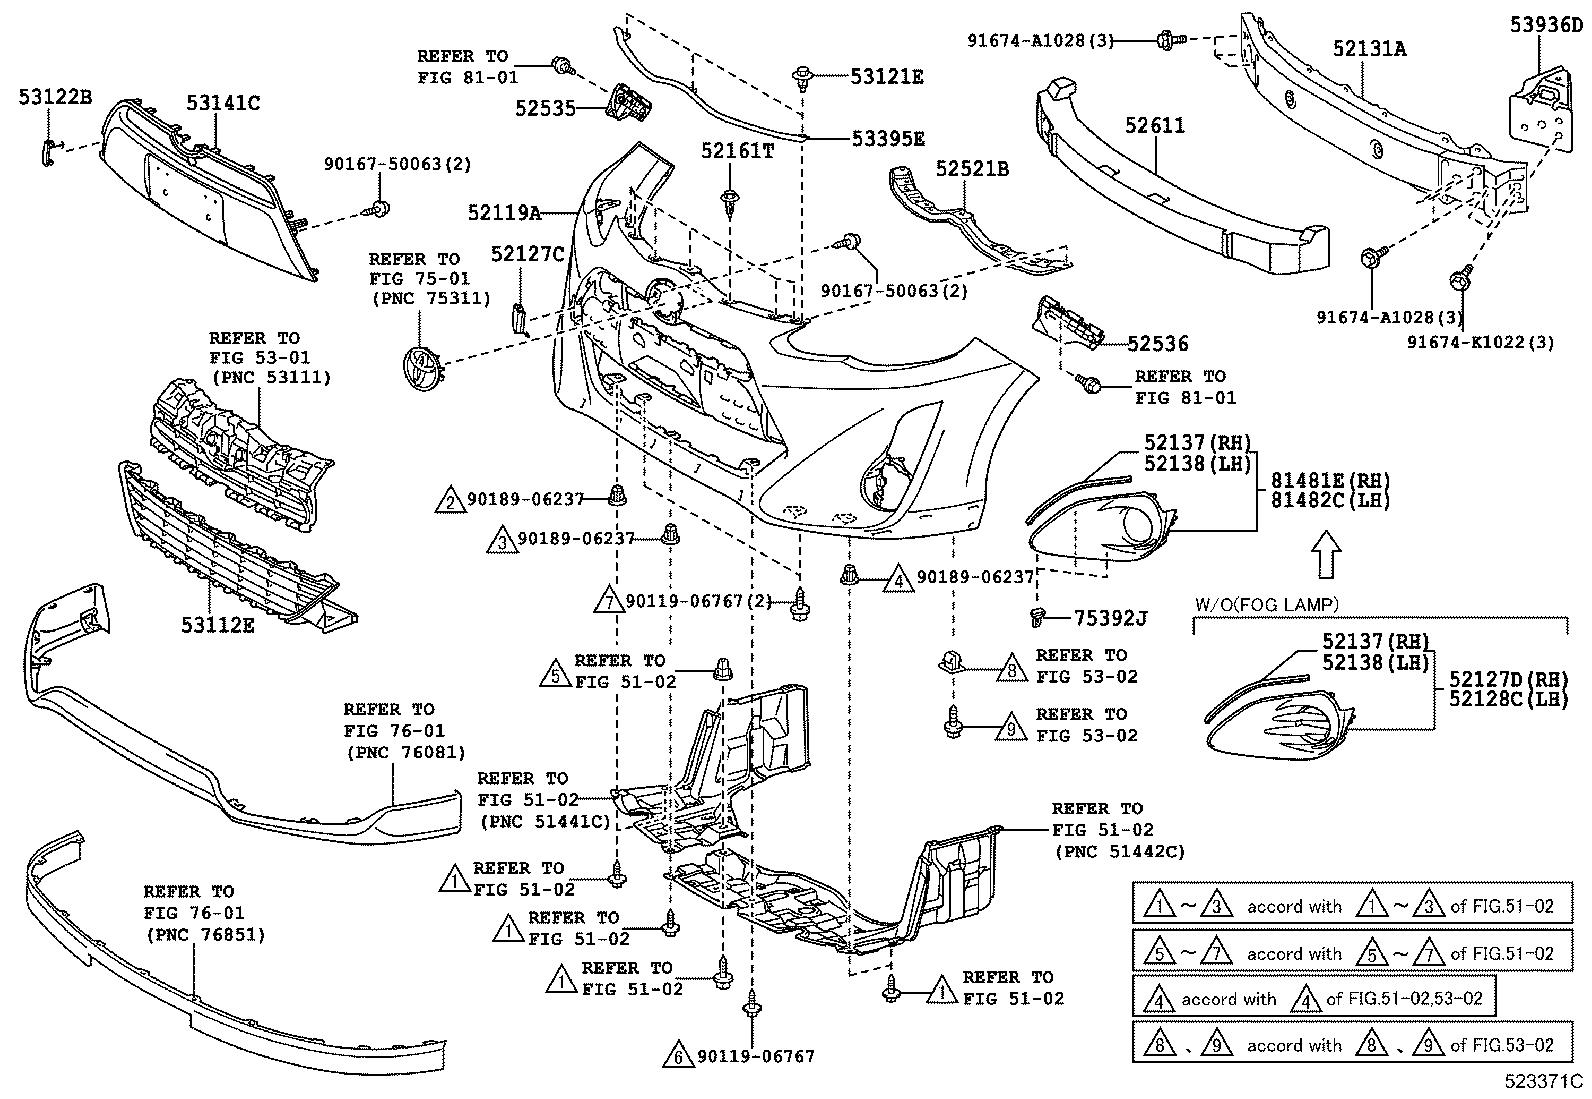 2013 Toyota Prius C Parts Diagram